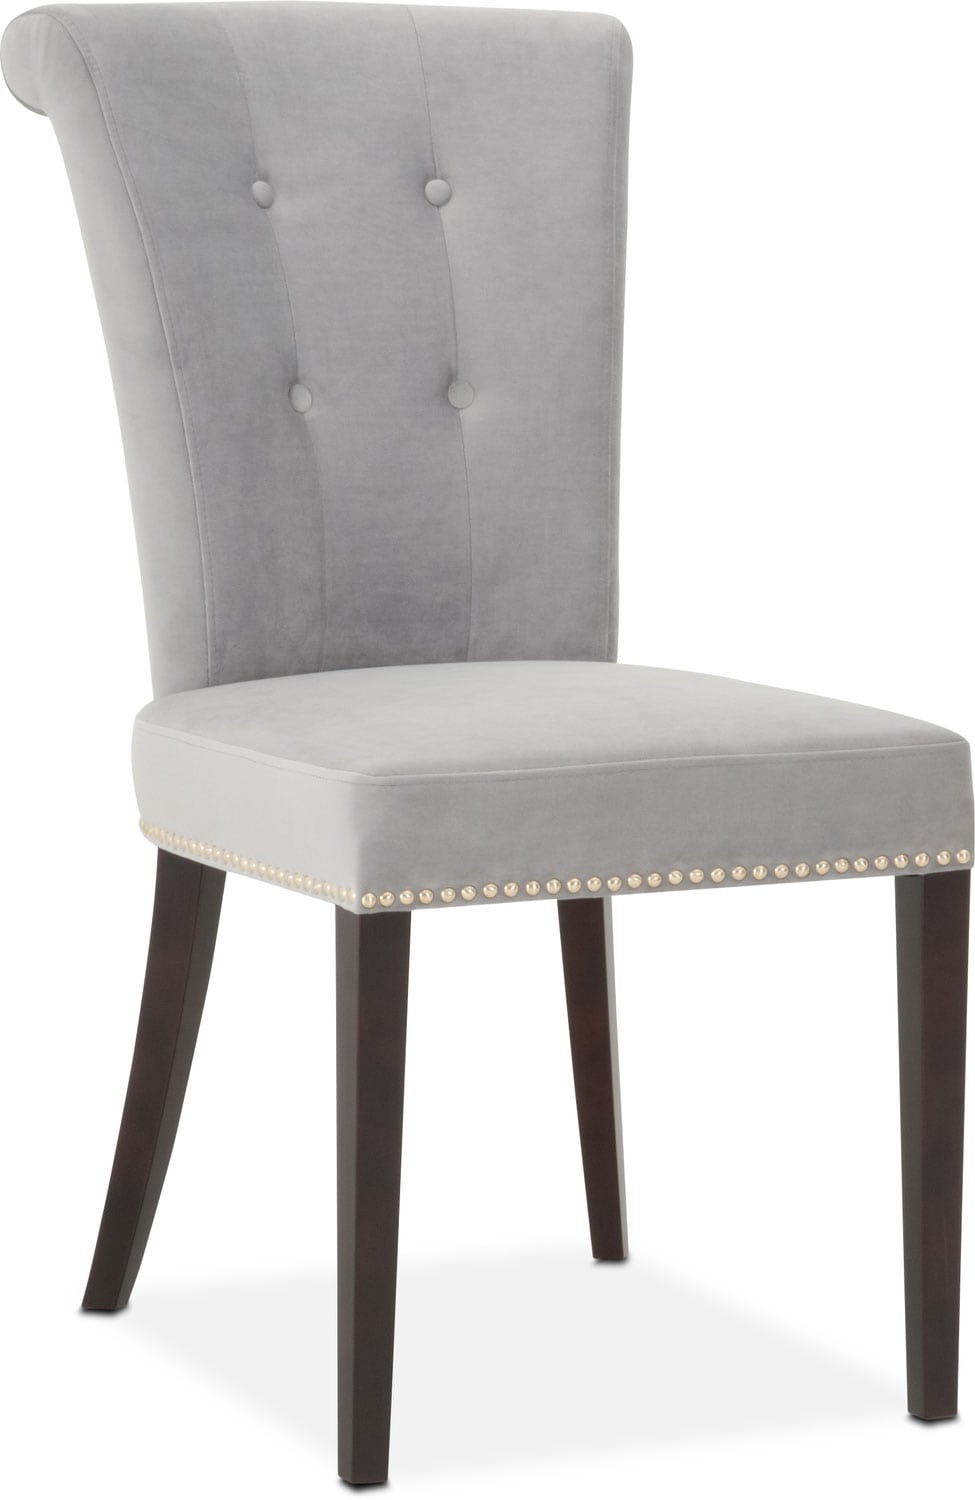 Office Furniture: Calloway Side Chair - Gray/Gold